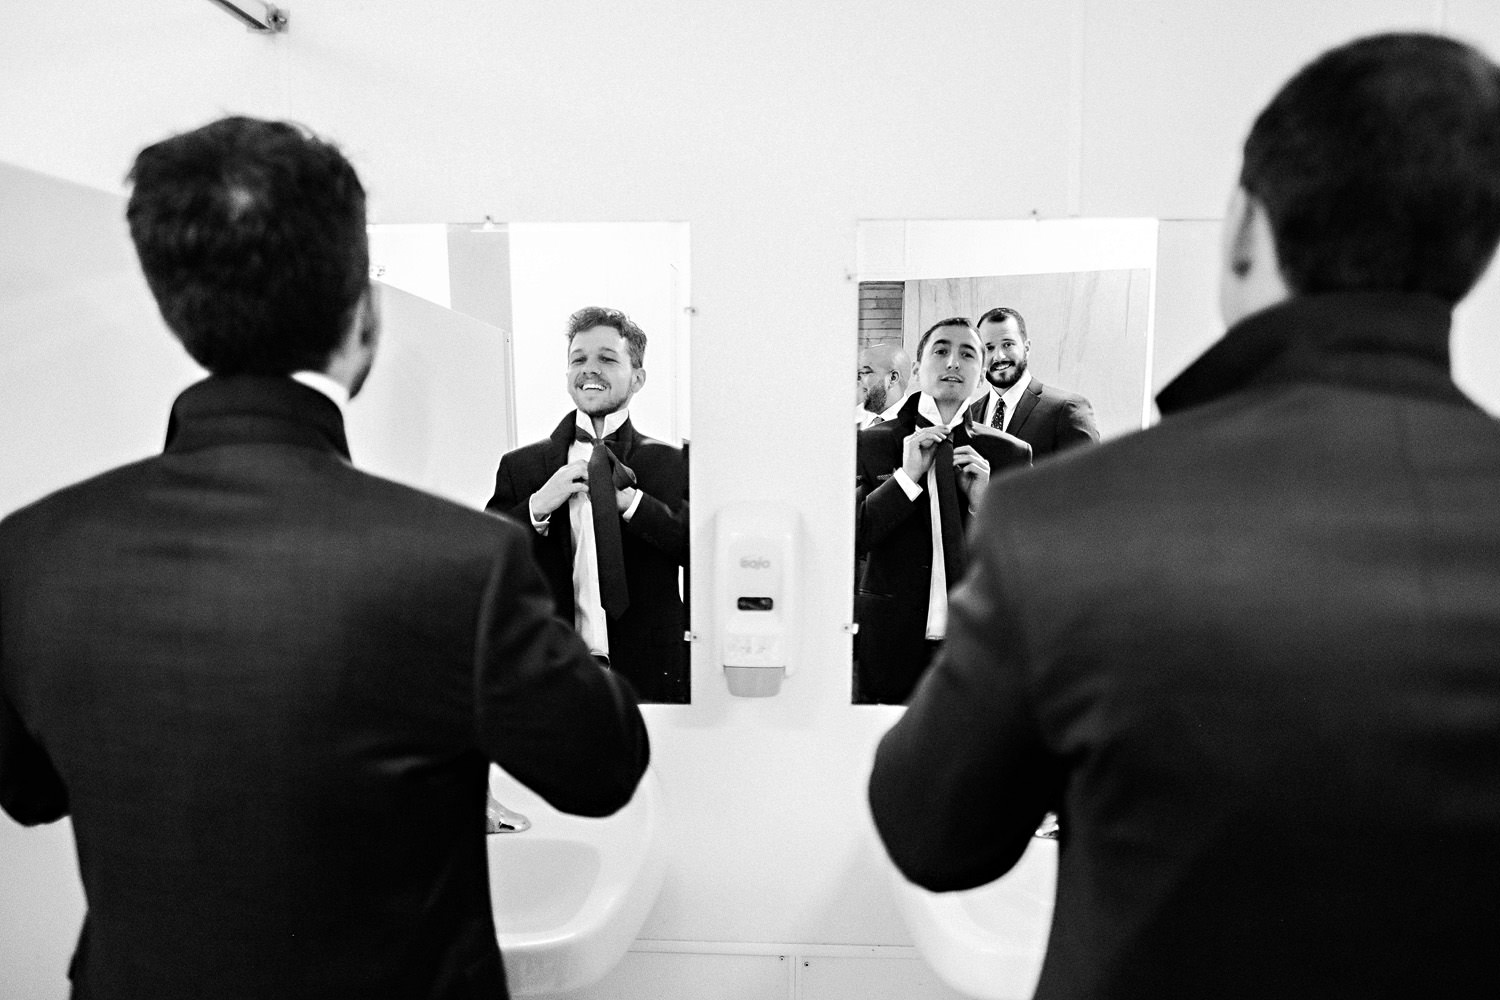 Groomsmen get ready in the bathroom mirror.